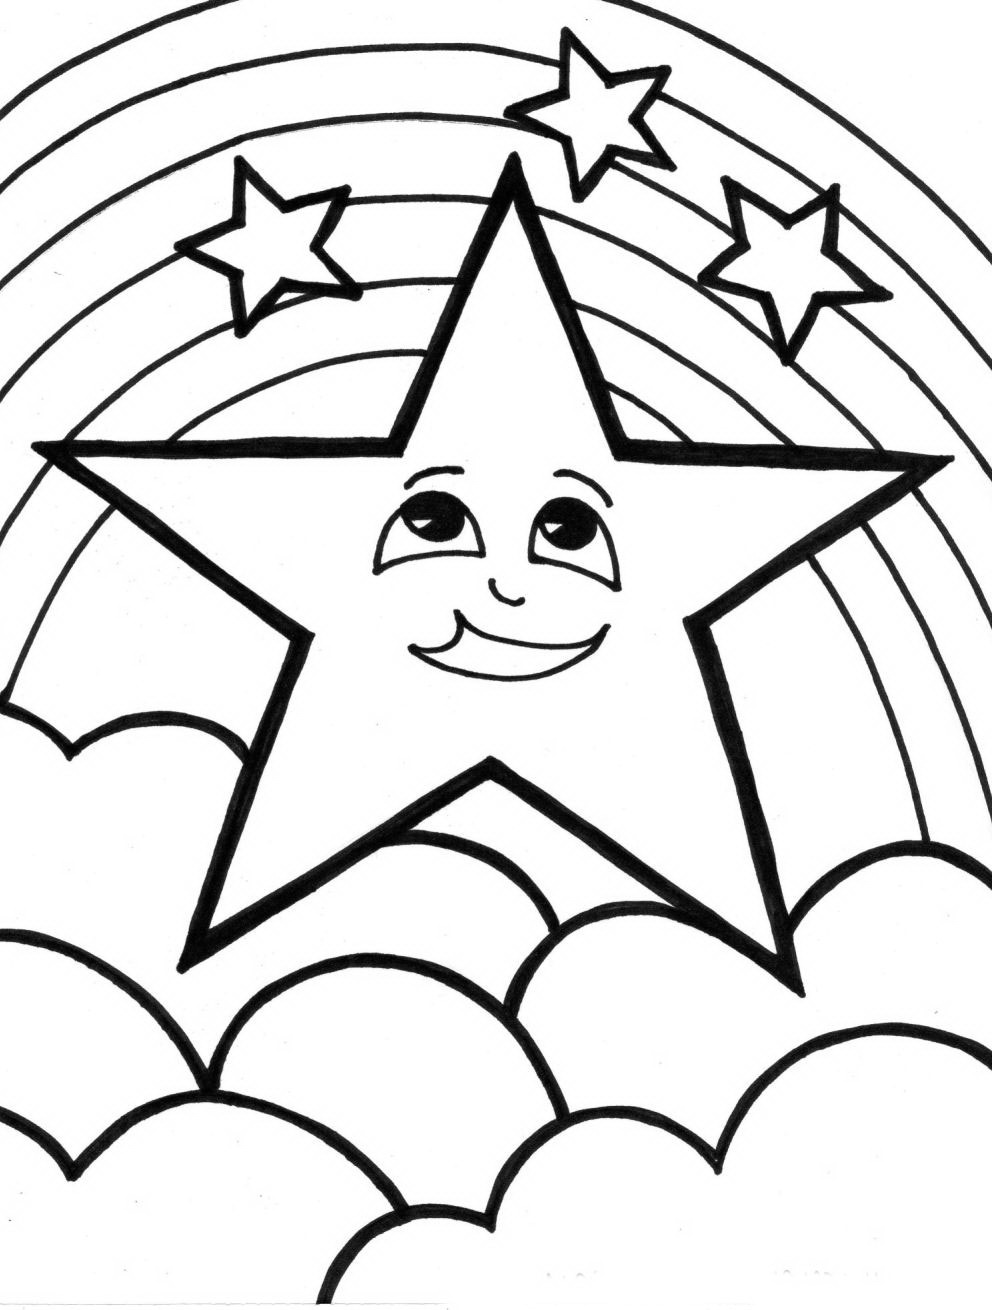 coloring picture of rainbow rainbow coloring pages download and print rainbow rainbow of picture coloring